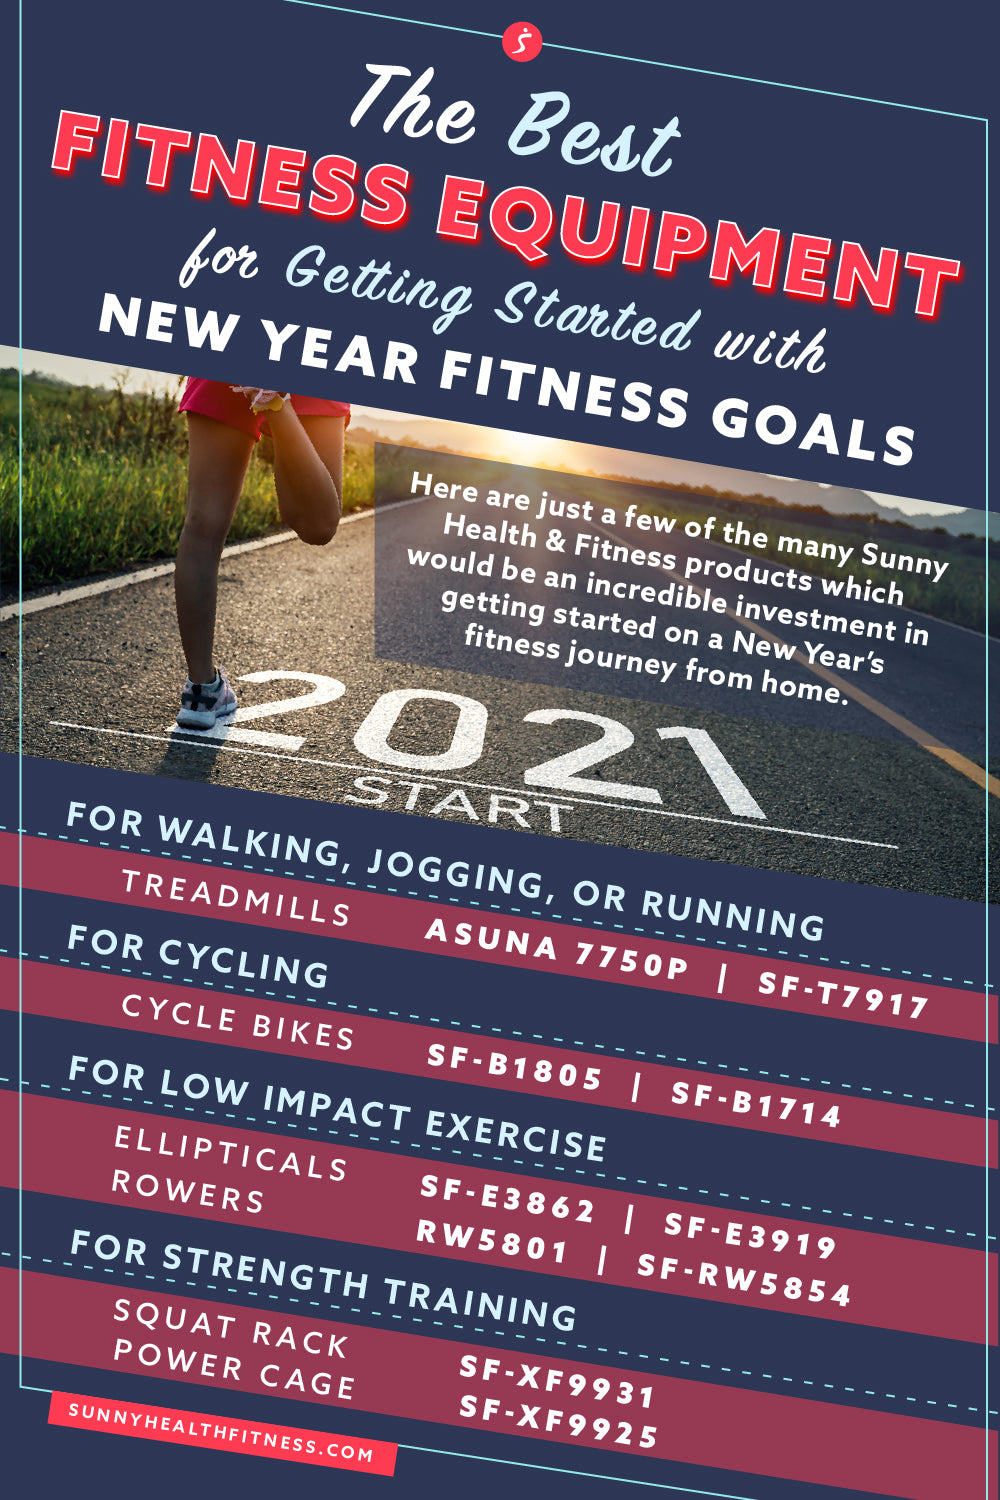 Best Fitness Equipment for Getting Started with New Year Fitness Goals Infographic